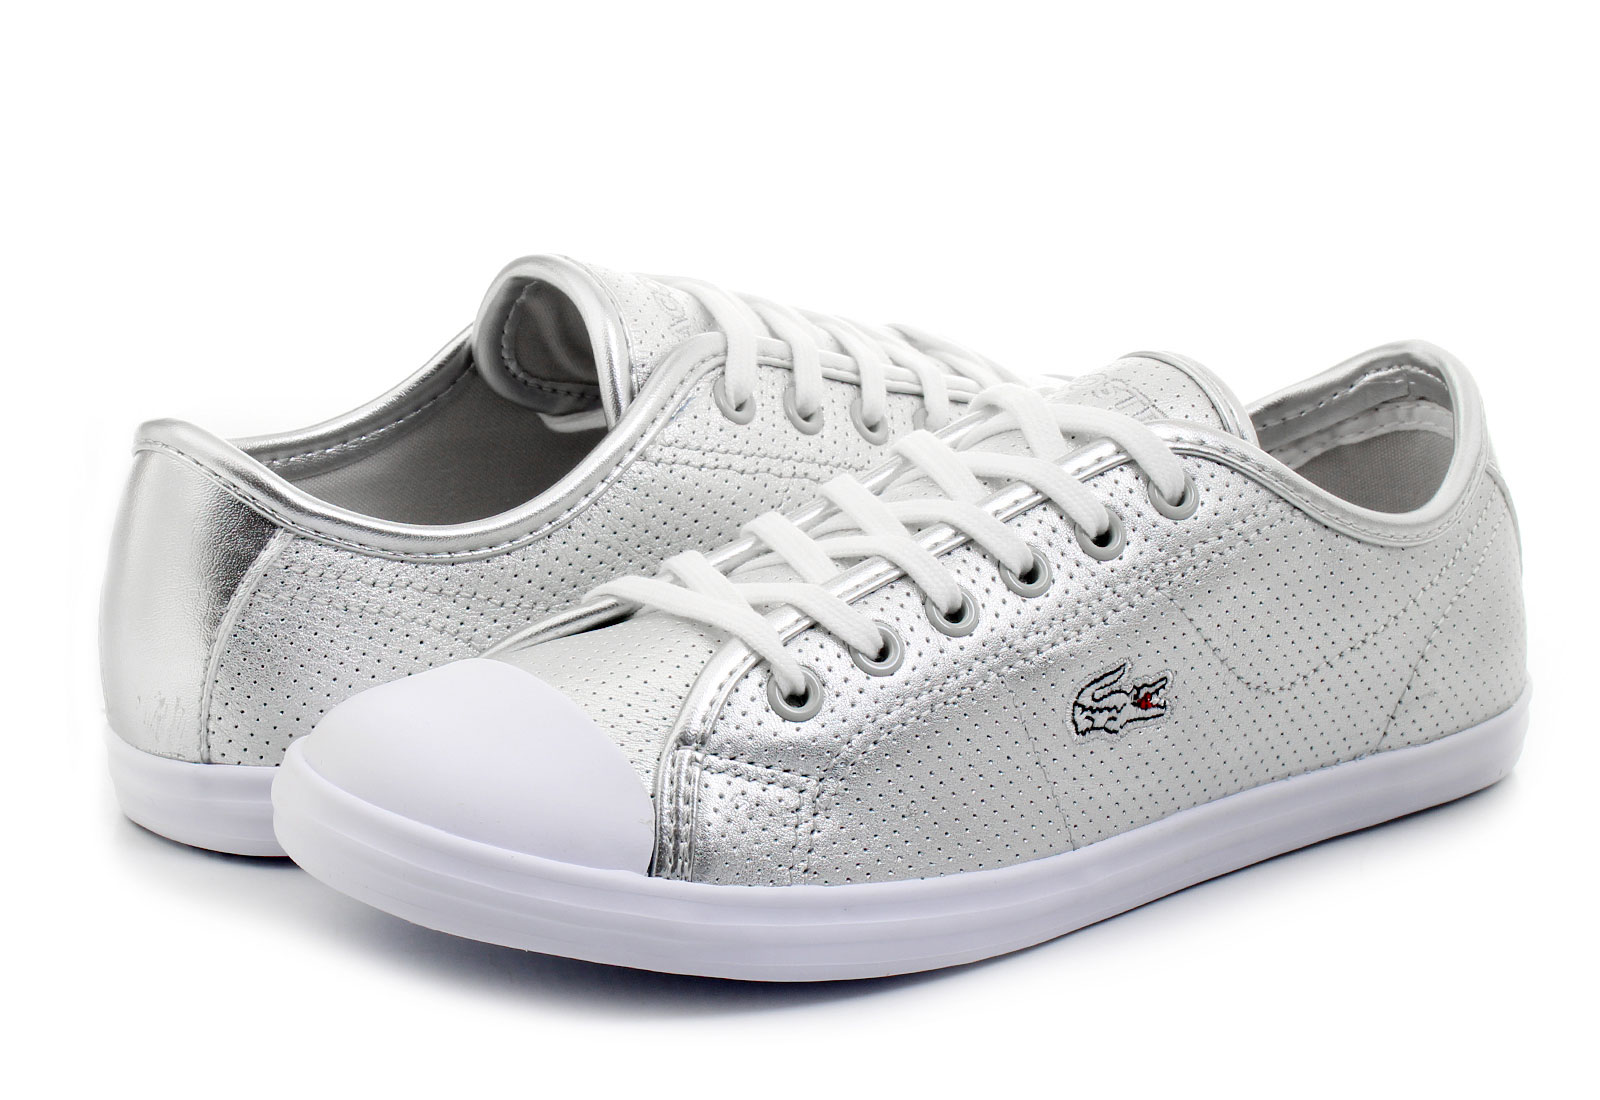 lacoste shoes ziane sneaker 161spw0037 166 online shop for sneakers shoes and boots. Black Bedroom Furniture Sets. Home Design Ideas